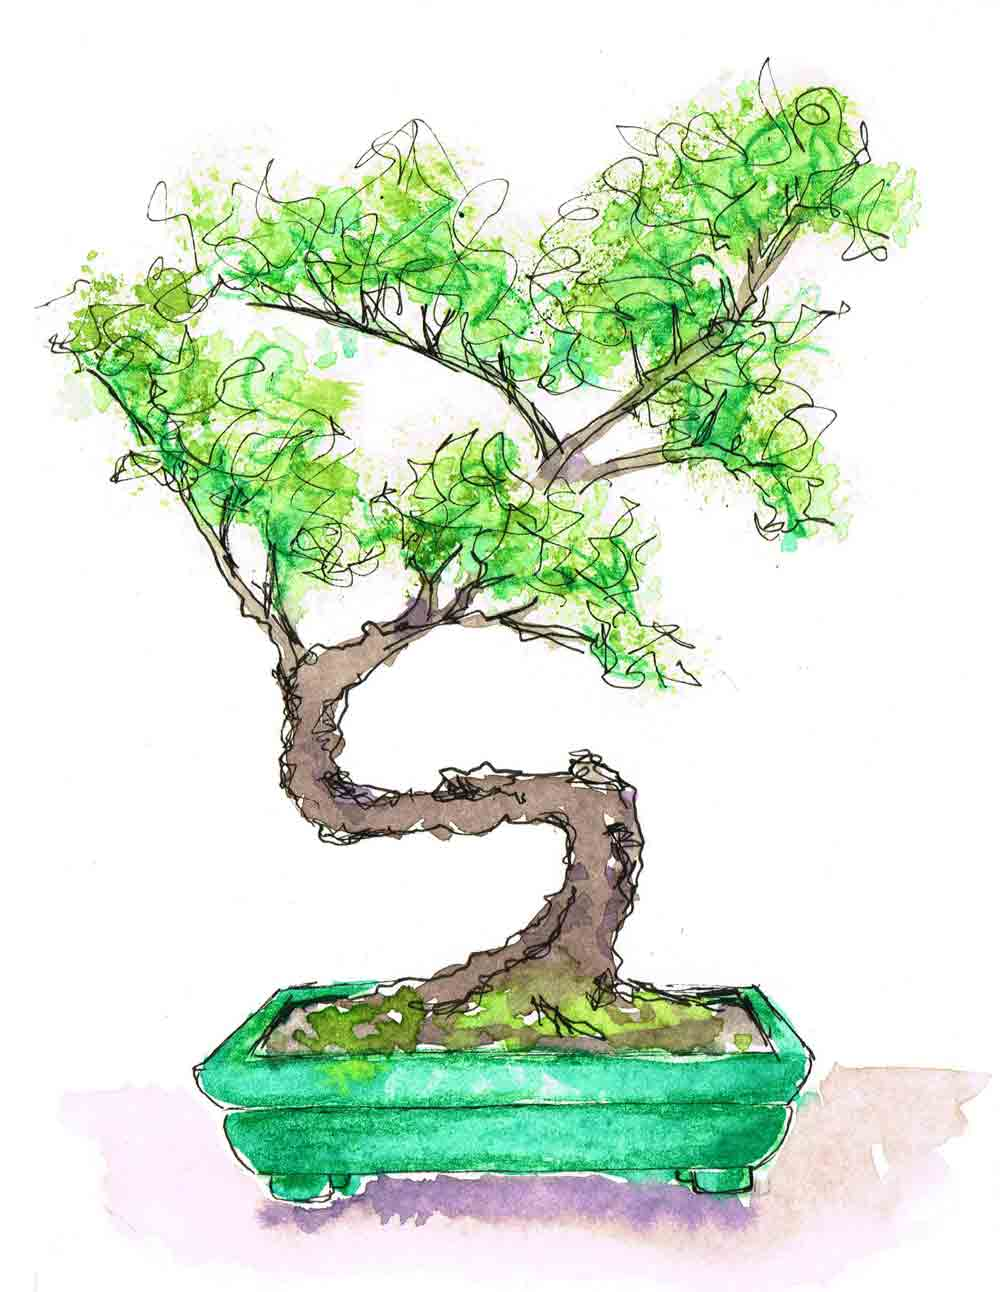 Bonsai-Pot-Plants-in-pots-no-6-kw.jpg